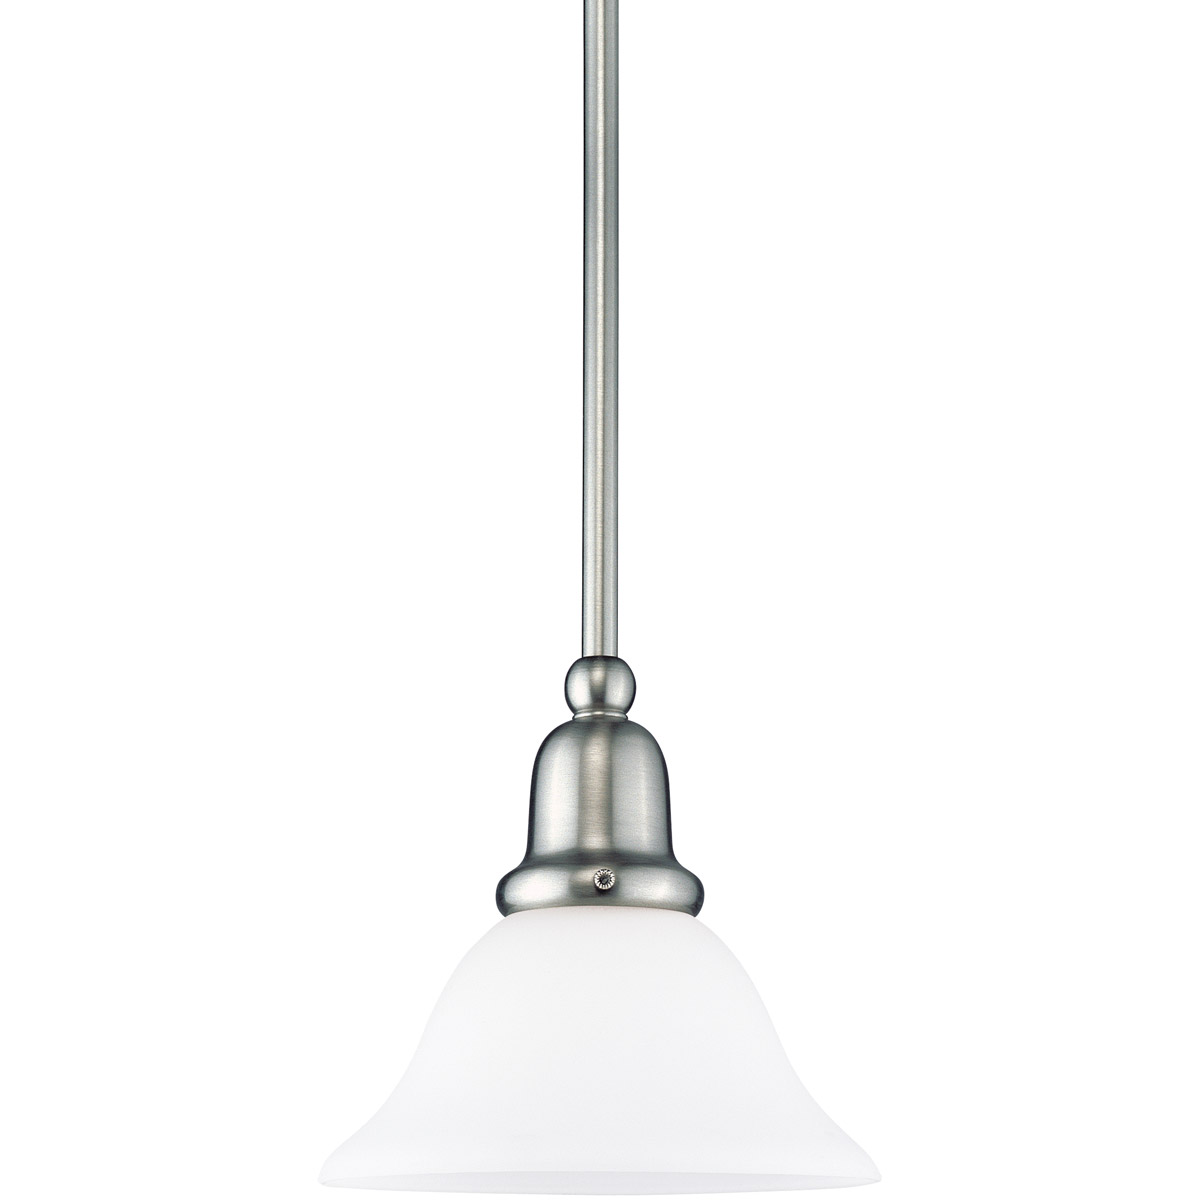 Sea Gull Lighting Sussex 1 Light Mini Pendant in Brushed Nickel 61060-962 photo